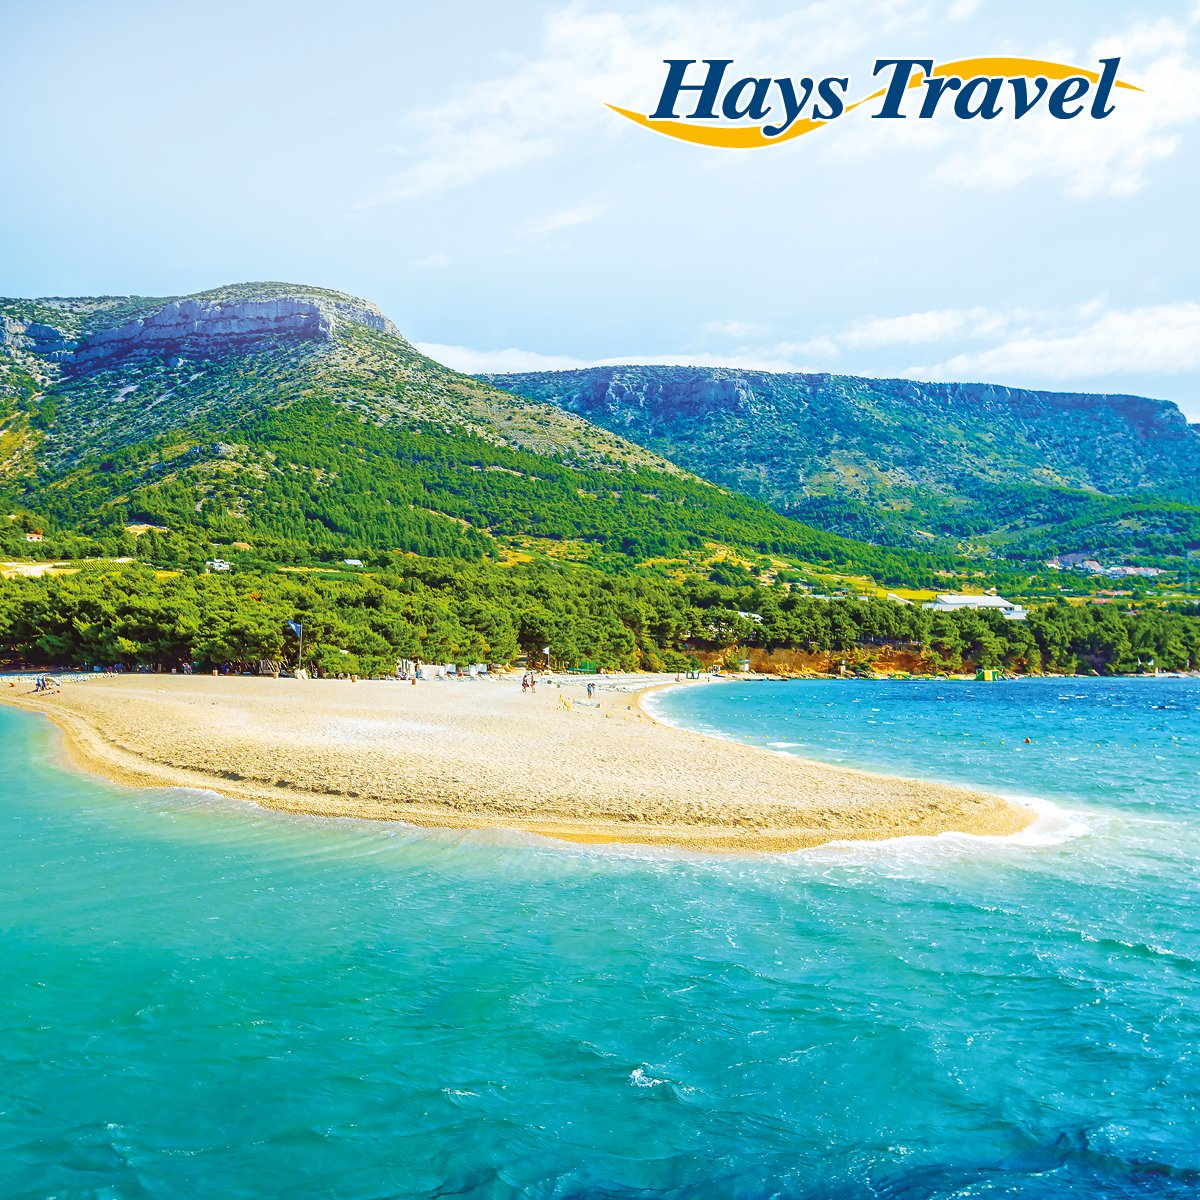 hays travel - photo #24